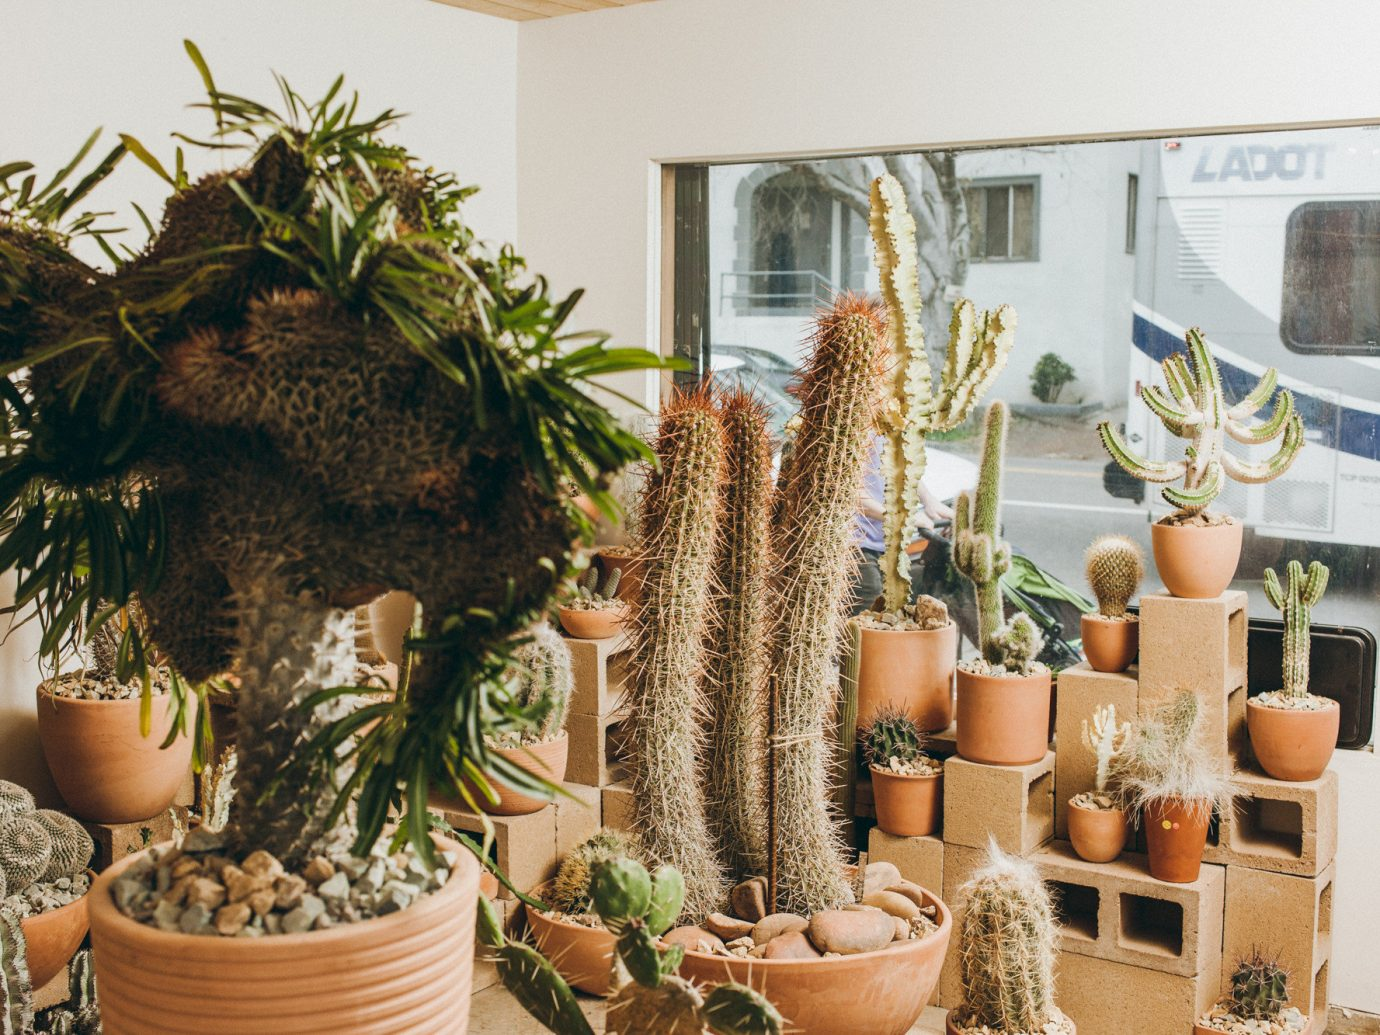 Offbeat Style + Design Travel Trends plant cactus flowerpot flower flowering plant hedgehog cactus caryophyllales furniture decorated